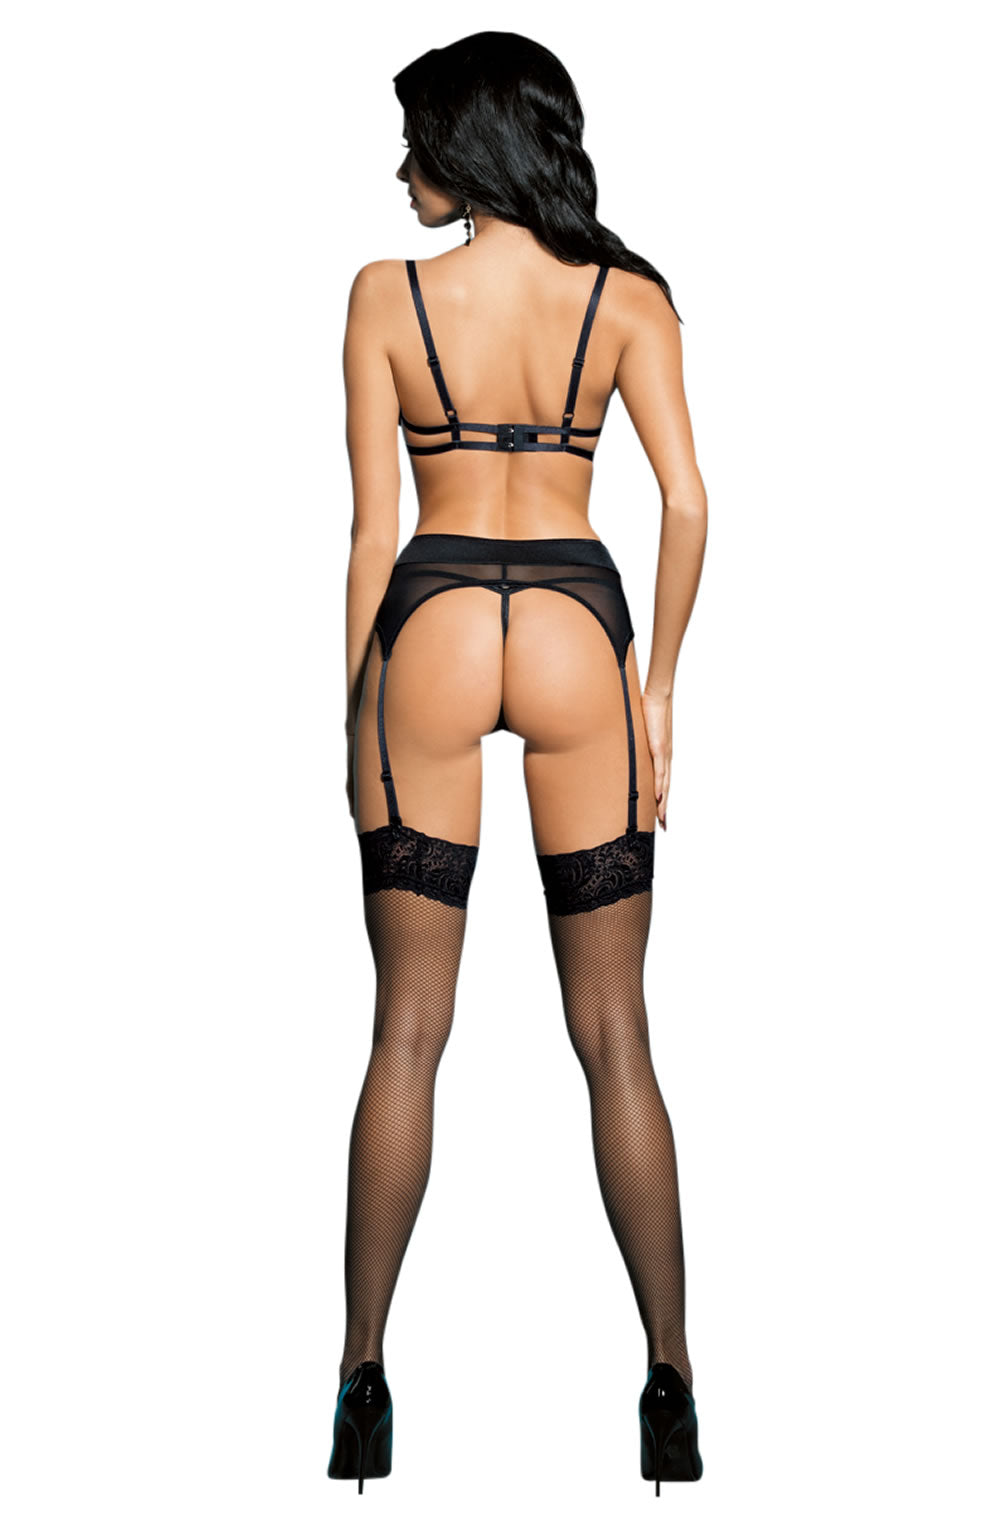 YesX YX926 4 Piece Set Black - Lingerie Best Lingerie Eden